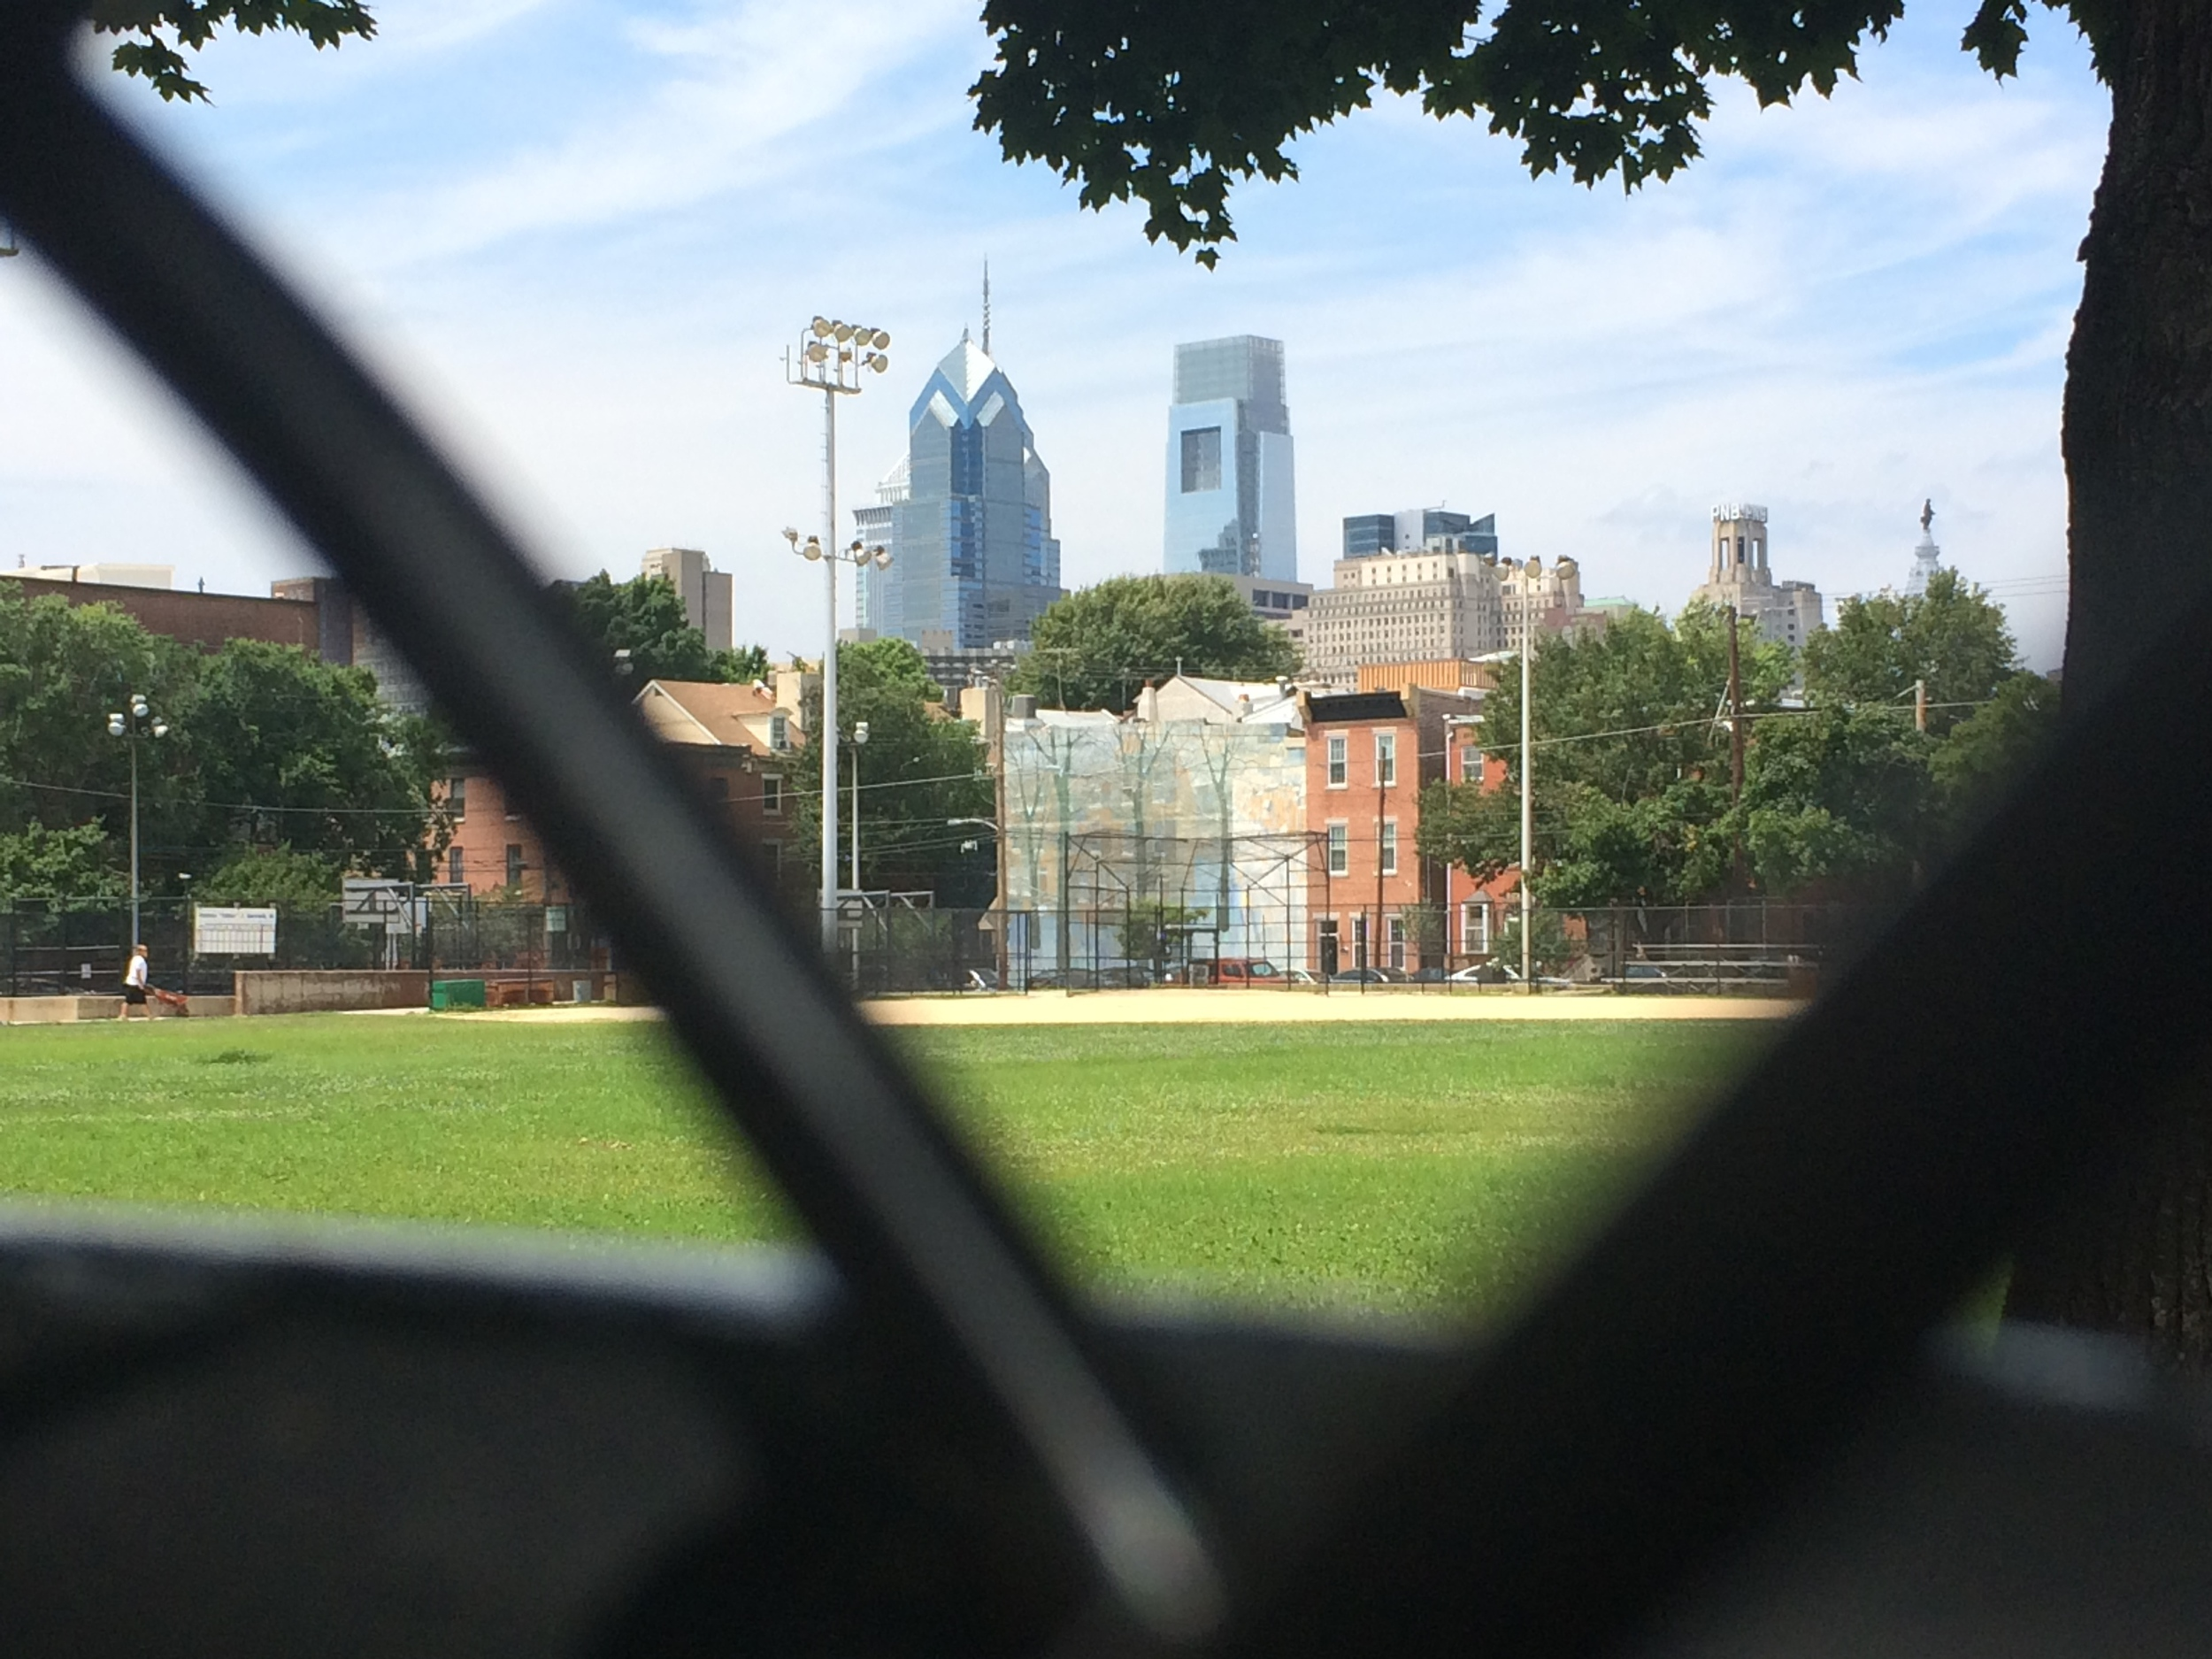 Philadelphia skyline from a park